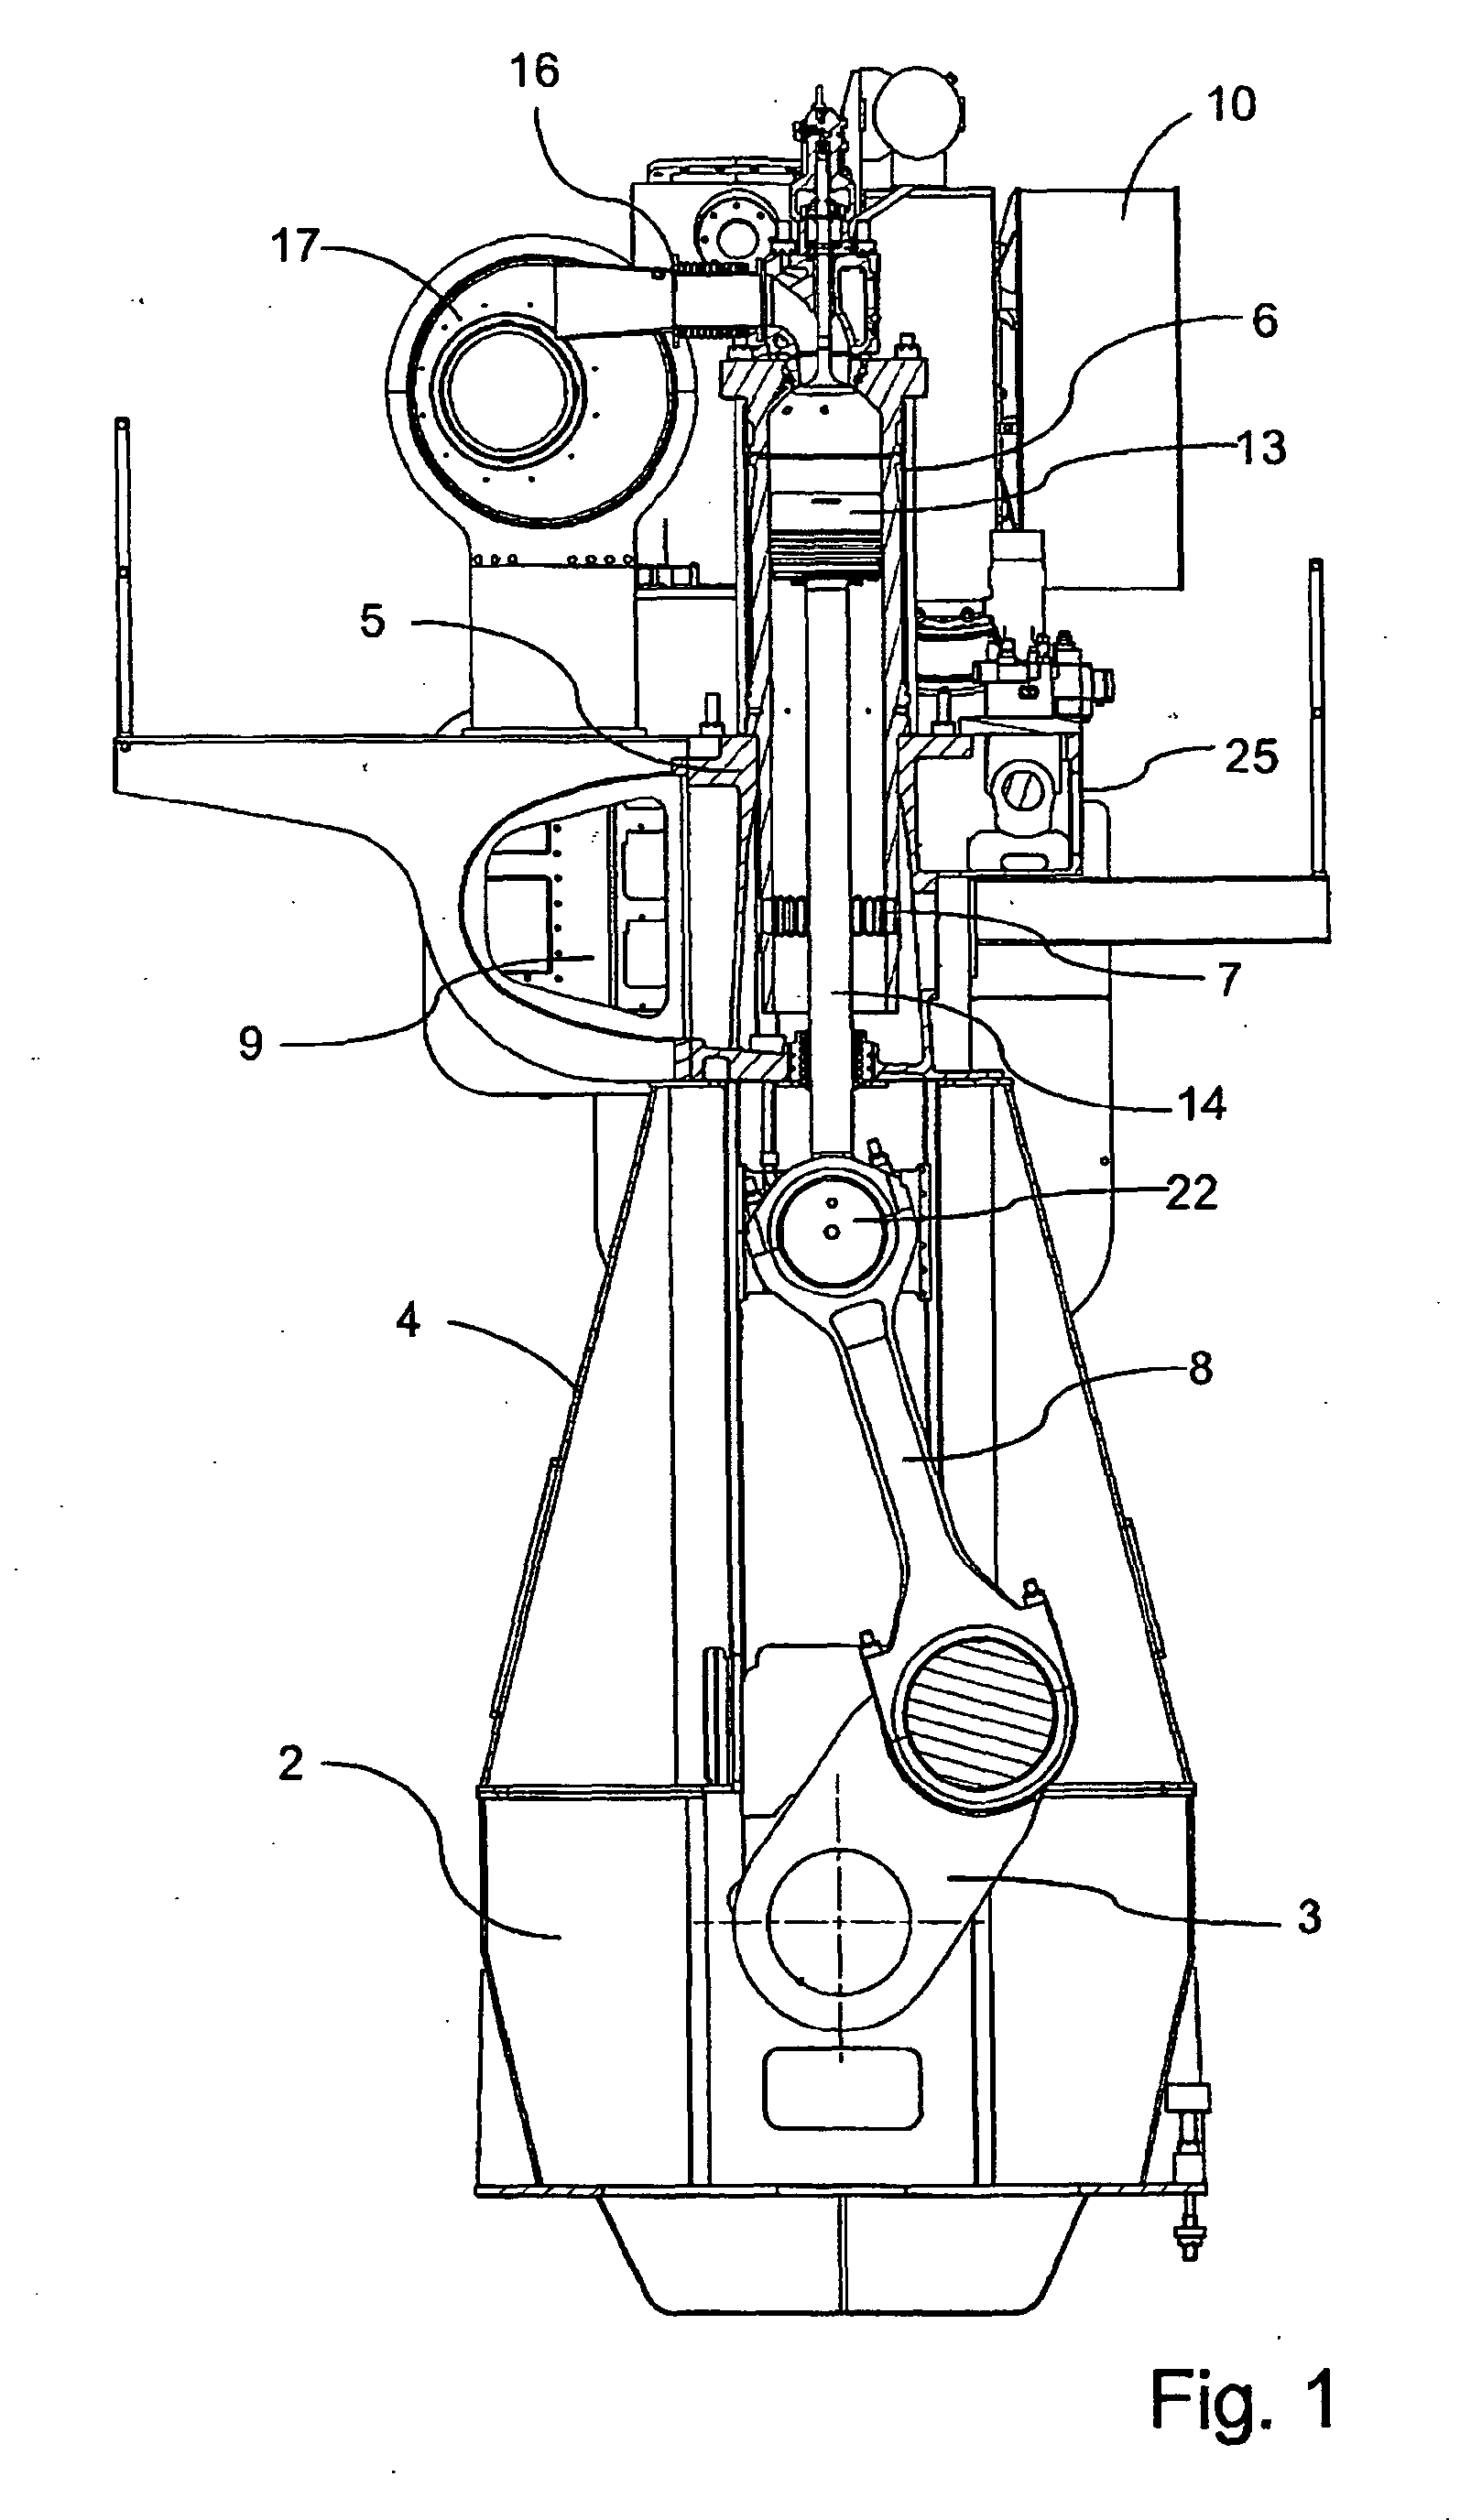 patent ep2138703b1 large uniflow two stroke diesel engine of the crosshead type patents